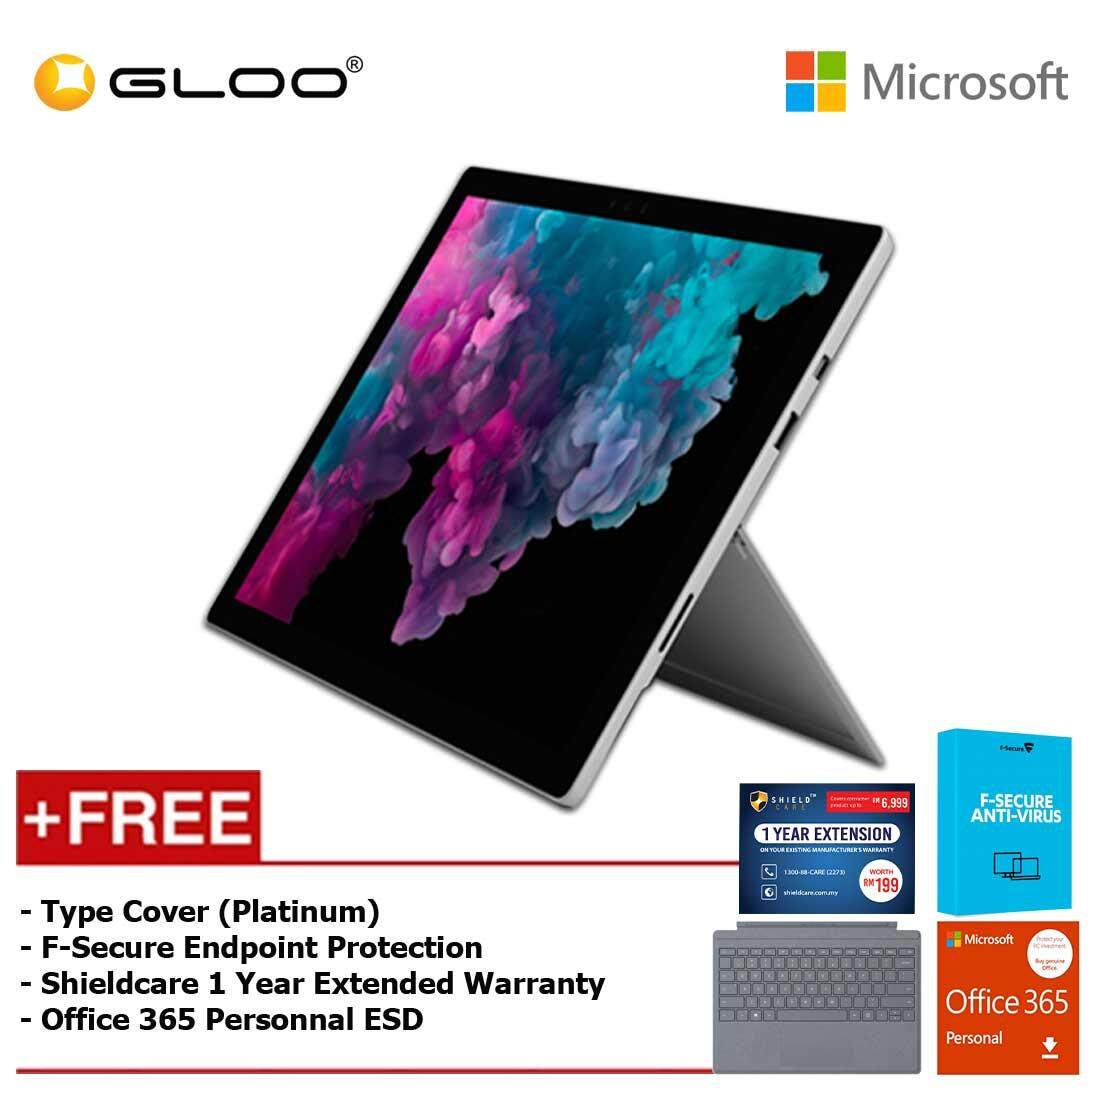 Microsoft Surface Pro 6 Core i5/8GB RAM -128GB + Type Cover Platinum + Office 365 Personal (ESD) + F-Secure Endpoint Protection + Shieldcare 1 Year Extended Warranty